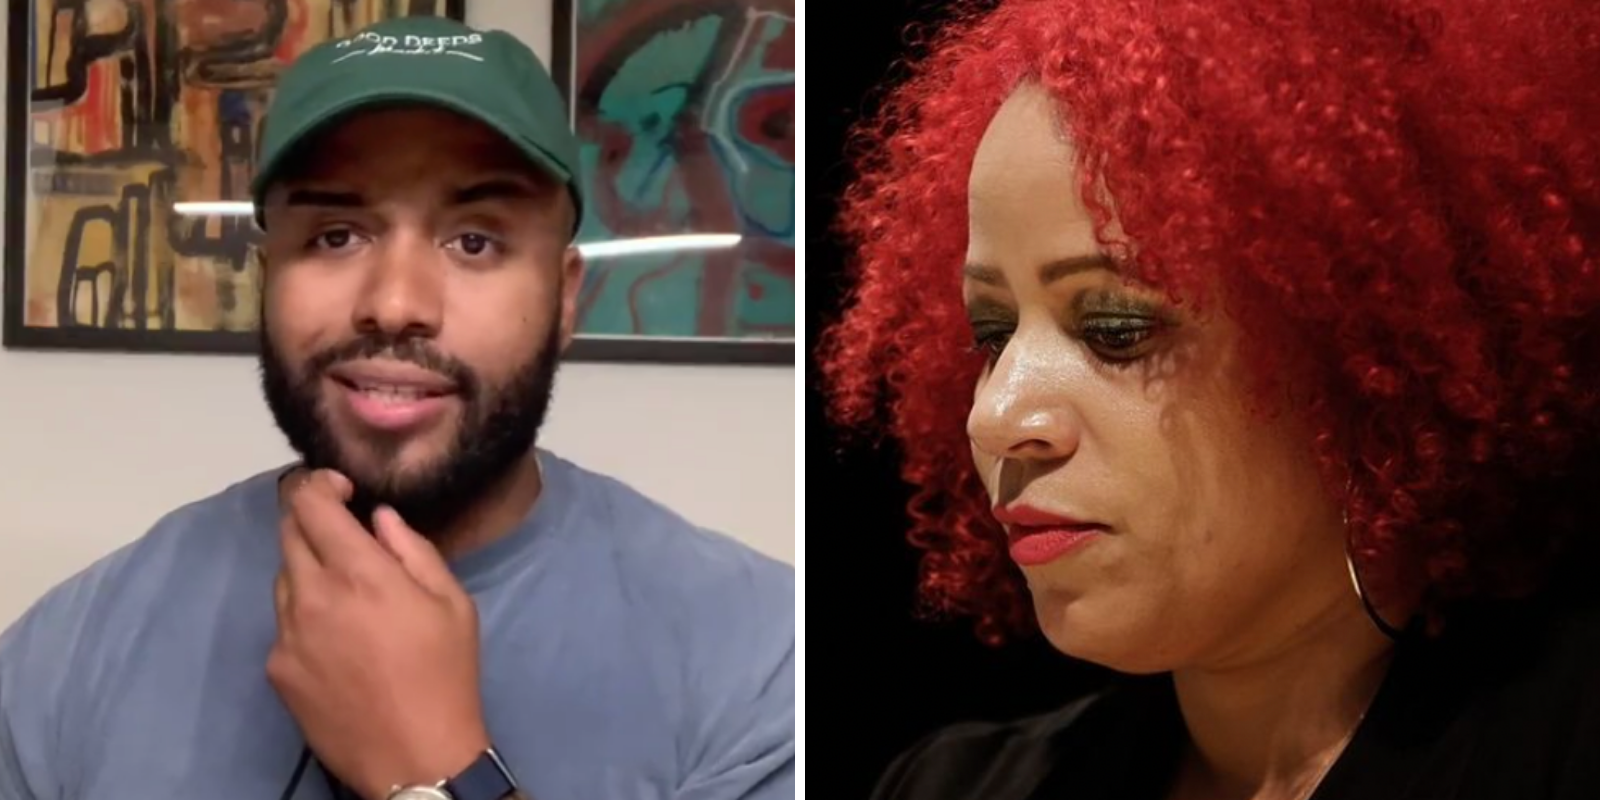 1619 Project founder Nikole Hannah-Jones criticizes black activist's cancellation of white woman over 'racism' in viral dog park video